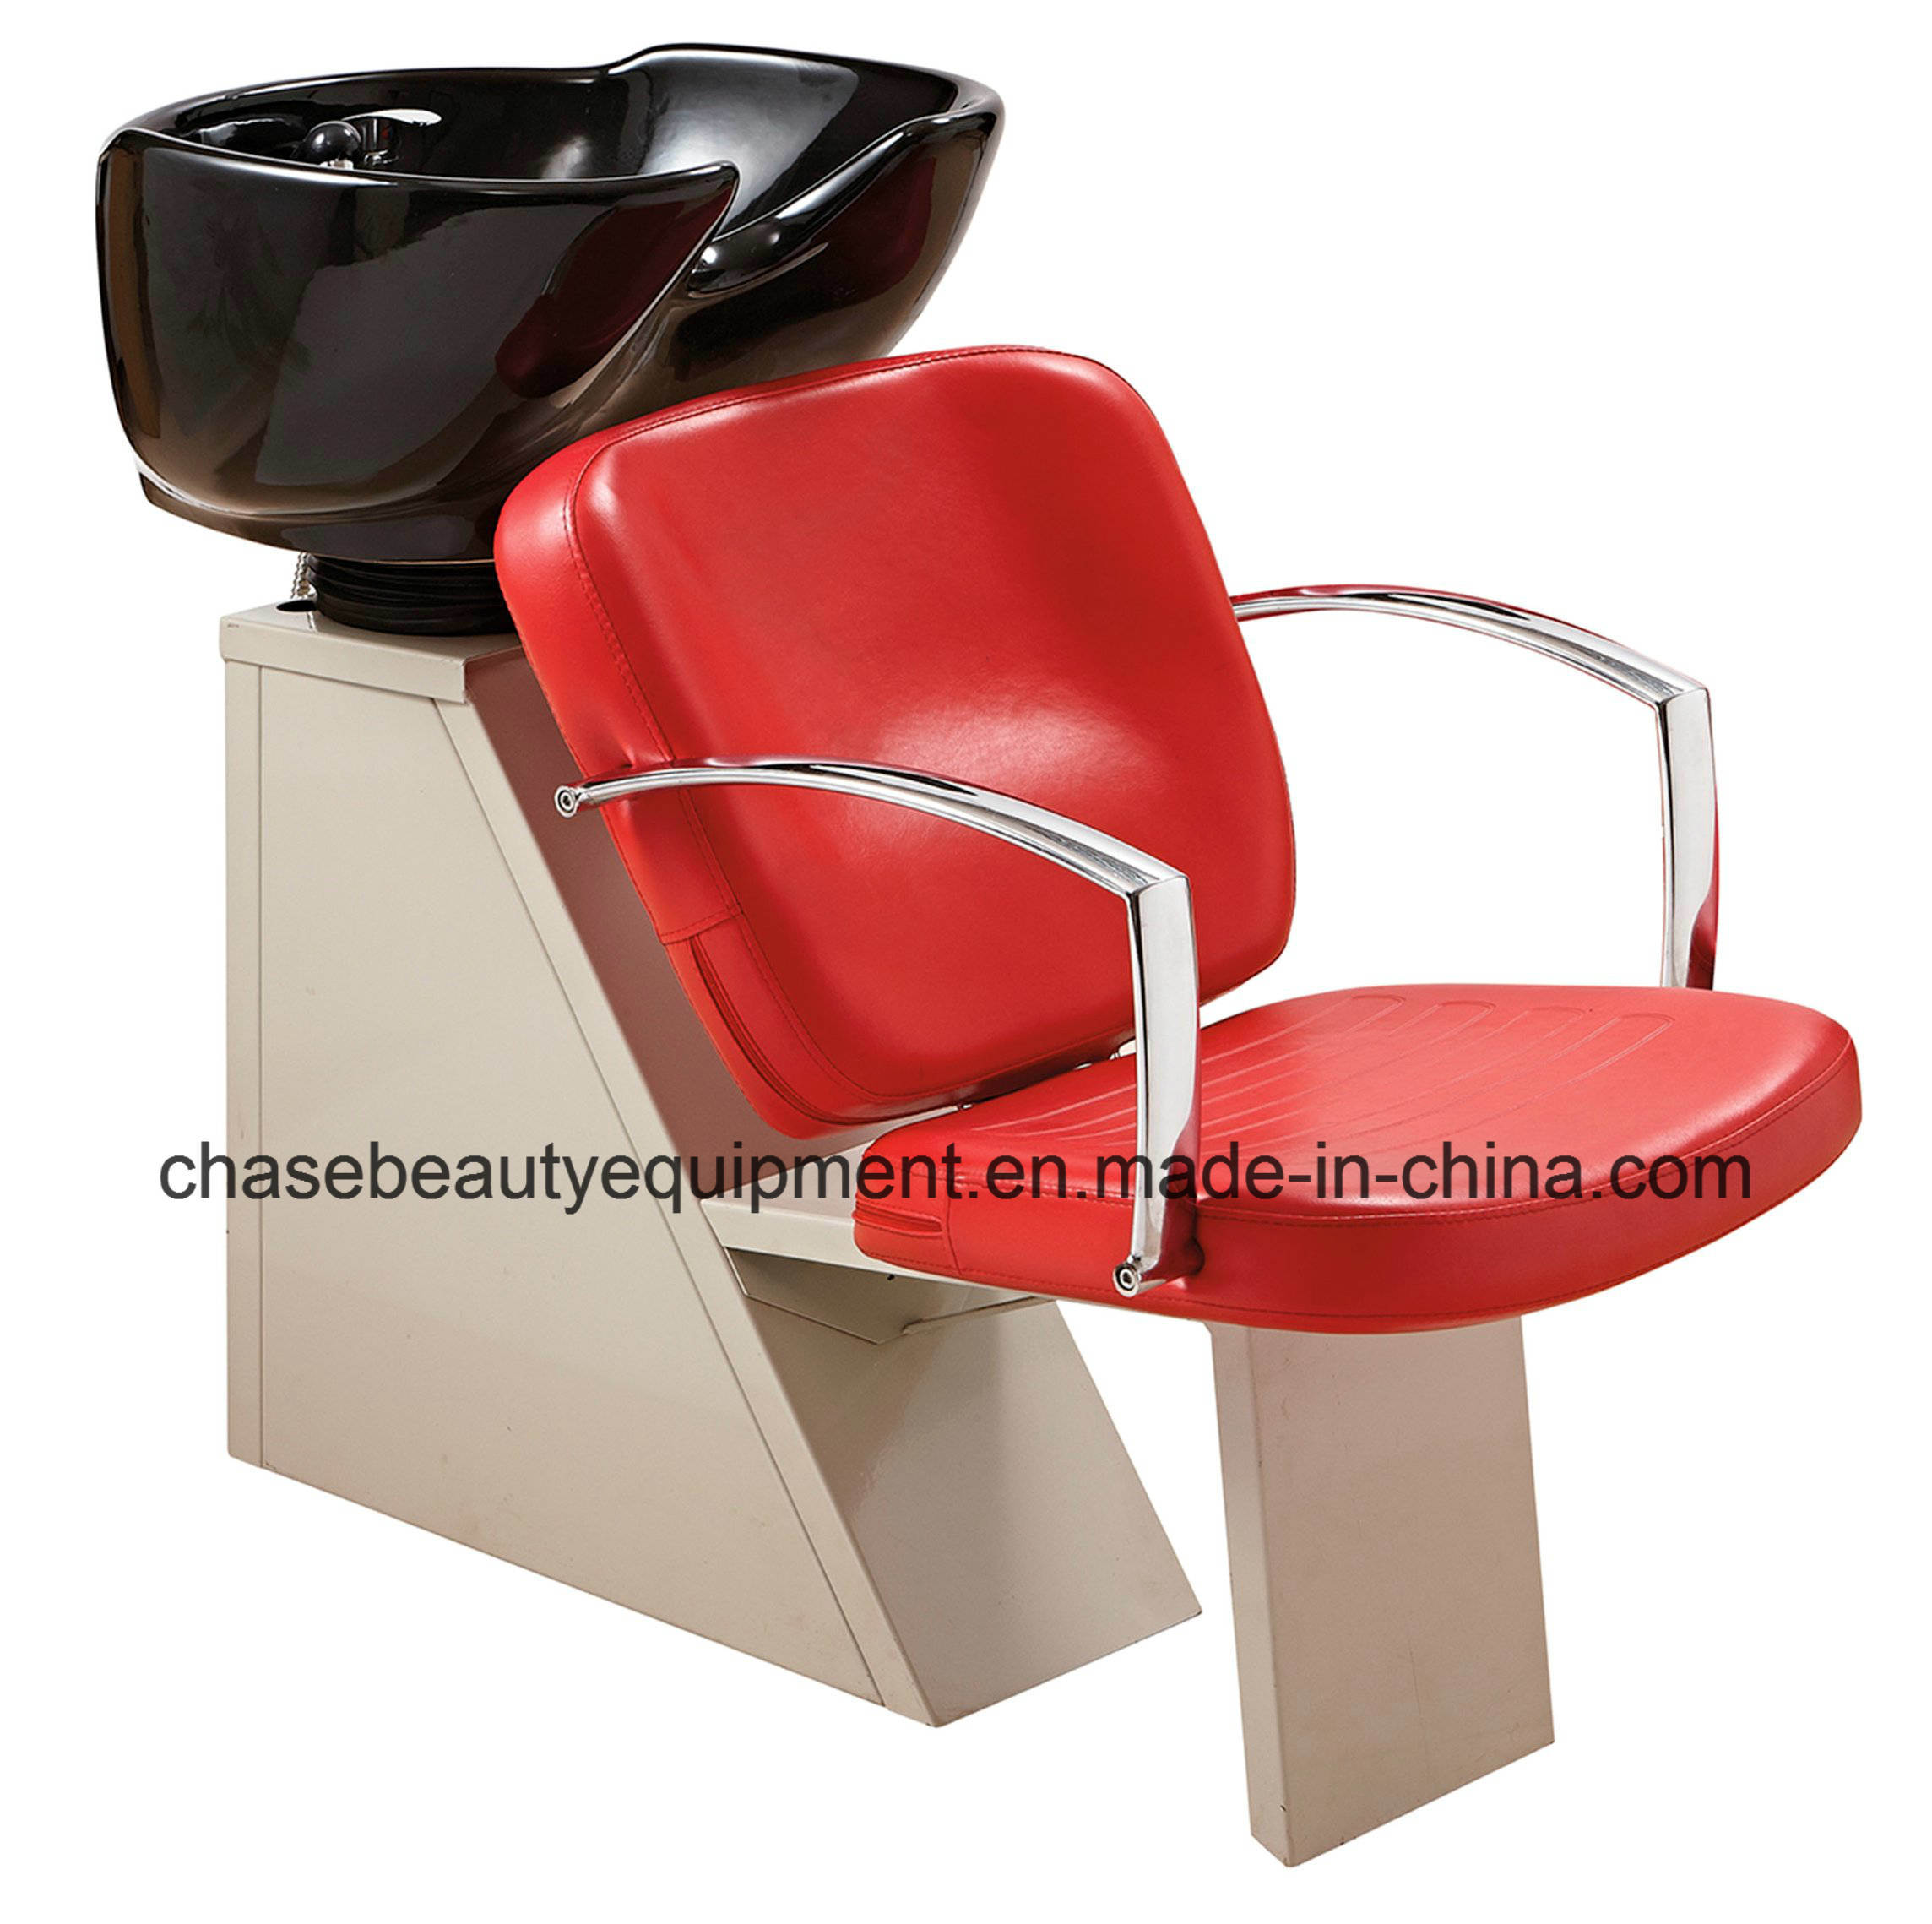 Beauty Equipment Shampoo Chair for Hair Washing Shop Used